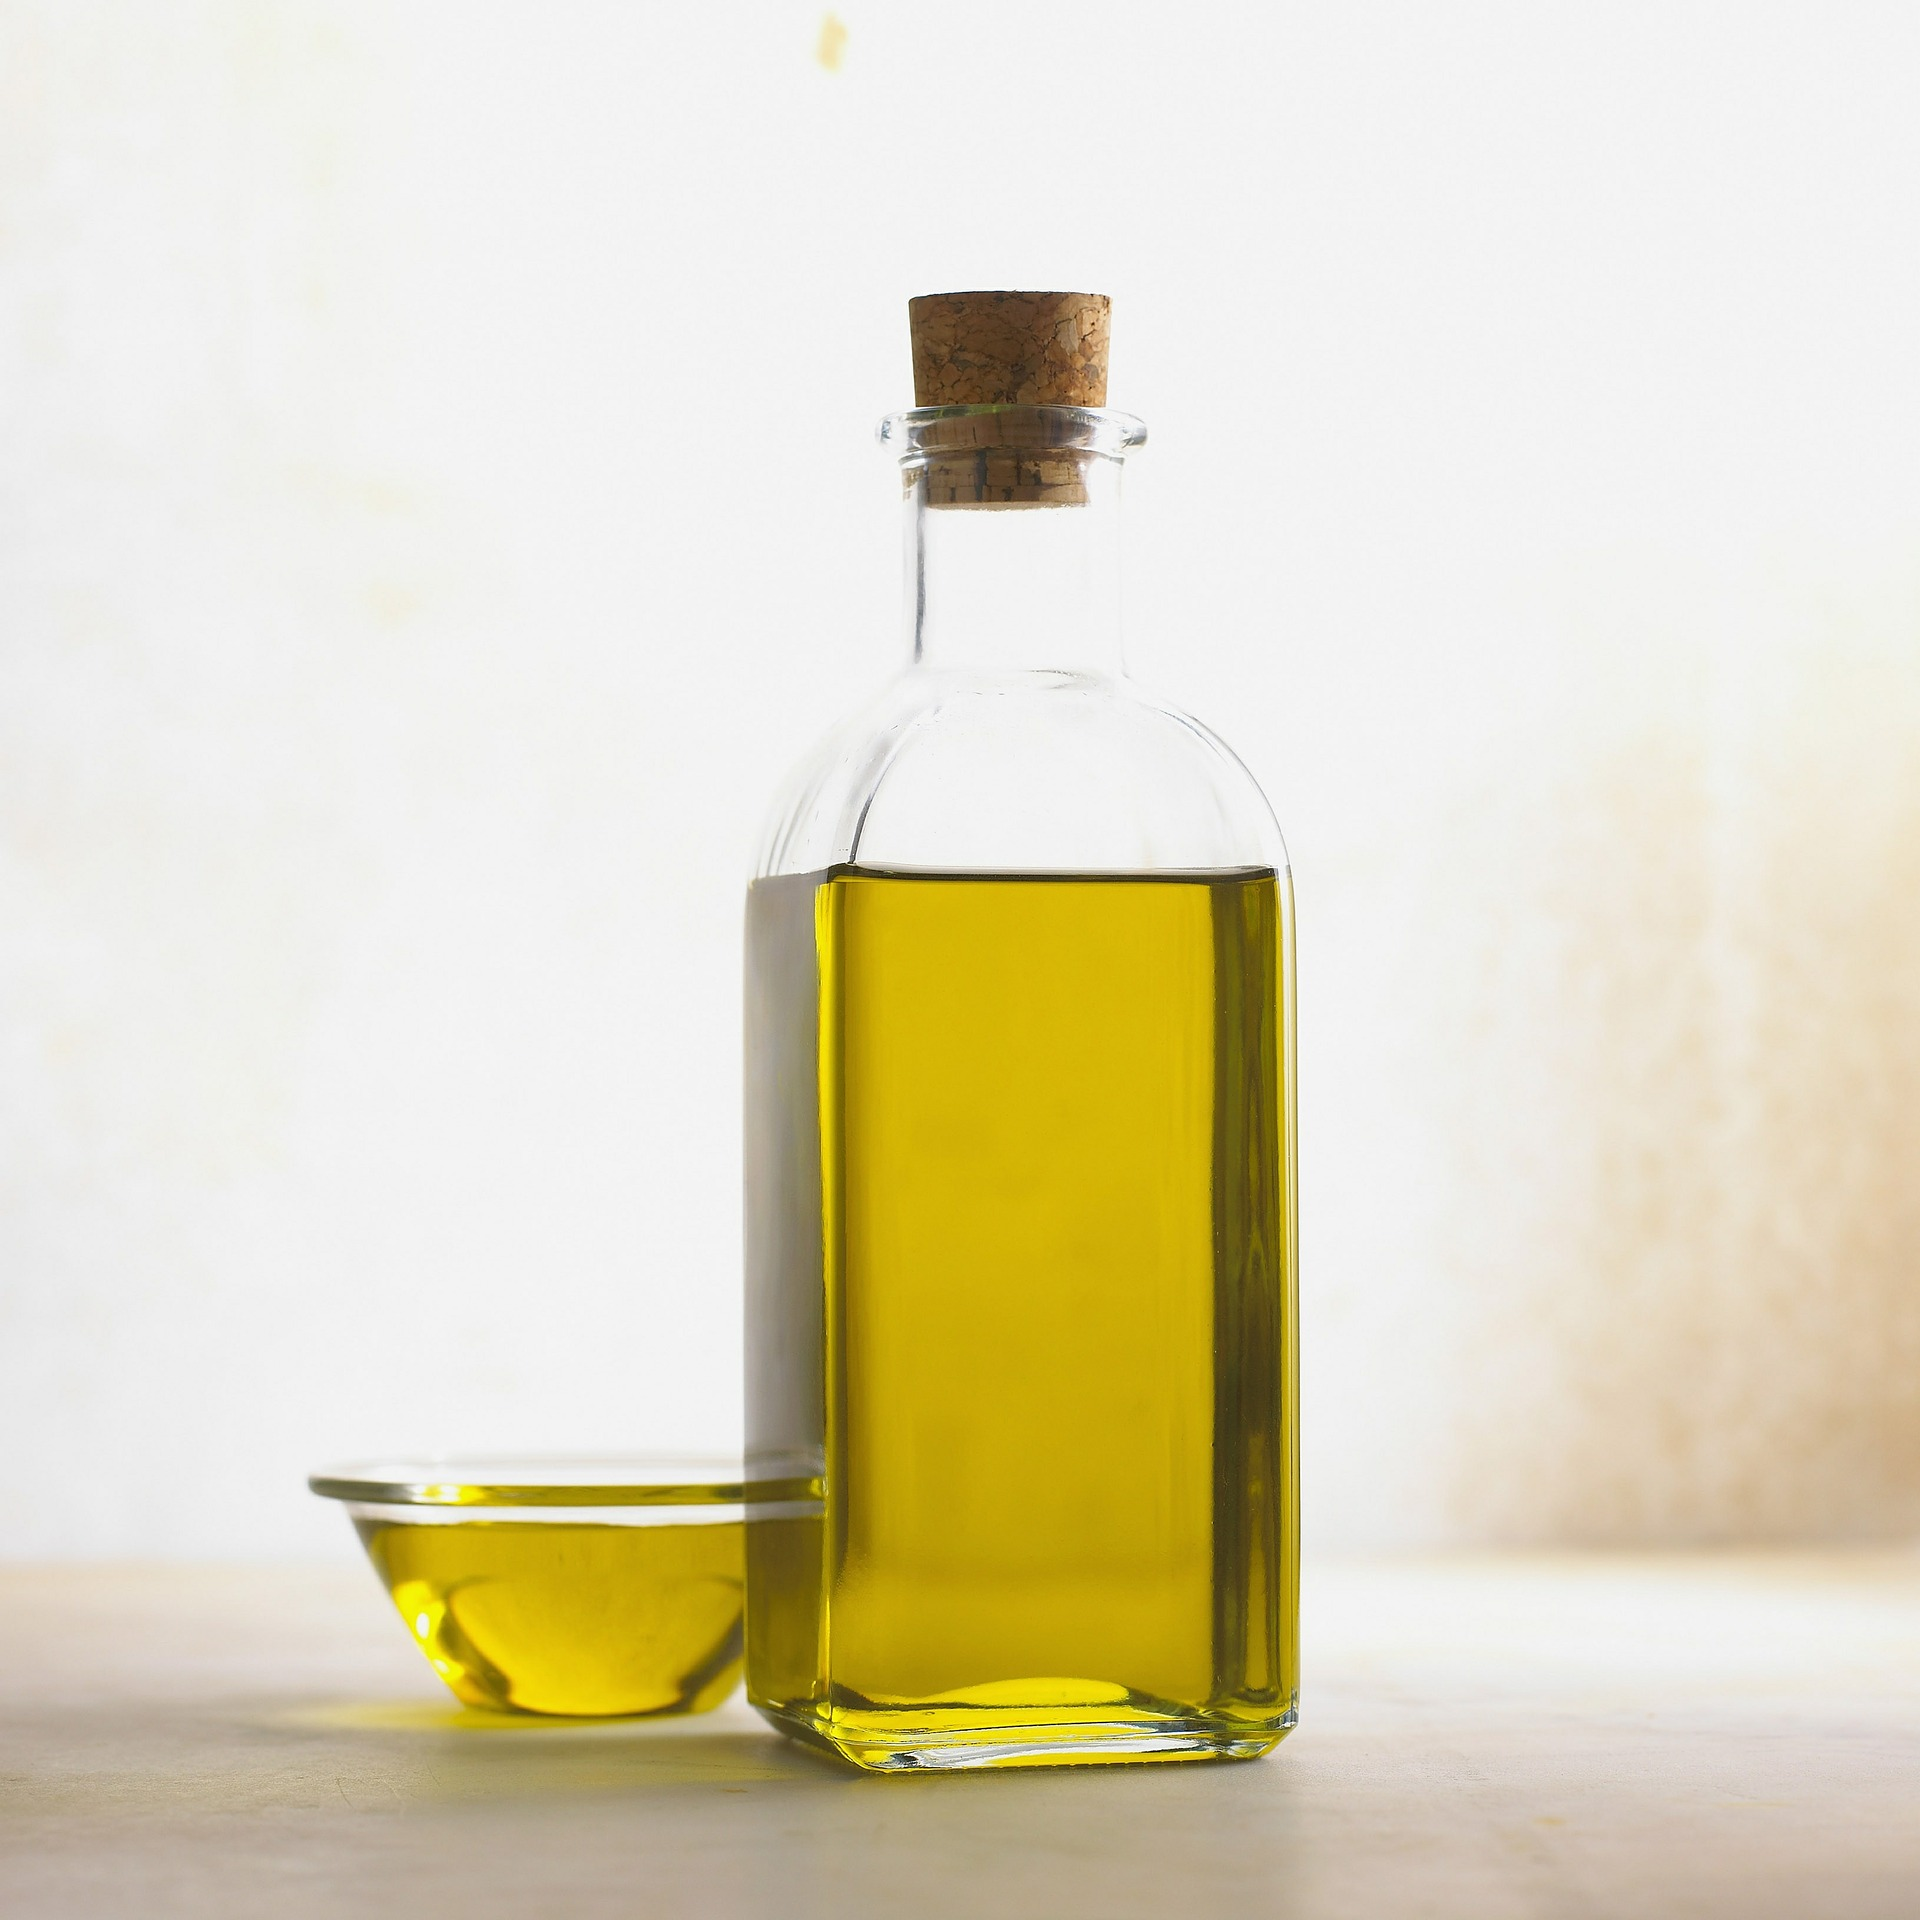 What Is Magnesium Oil Used For?